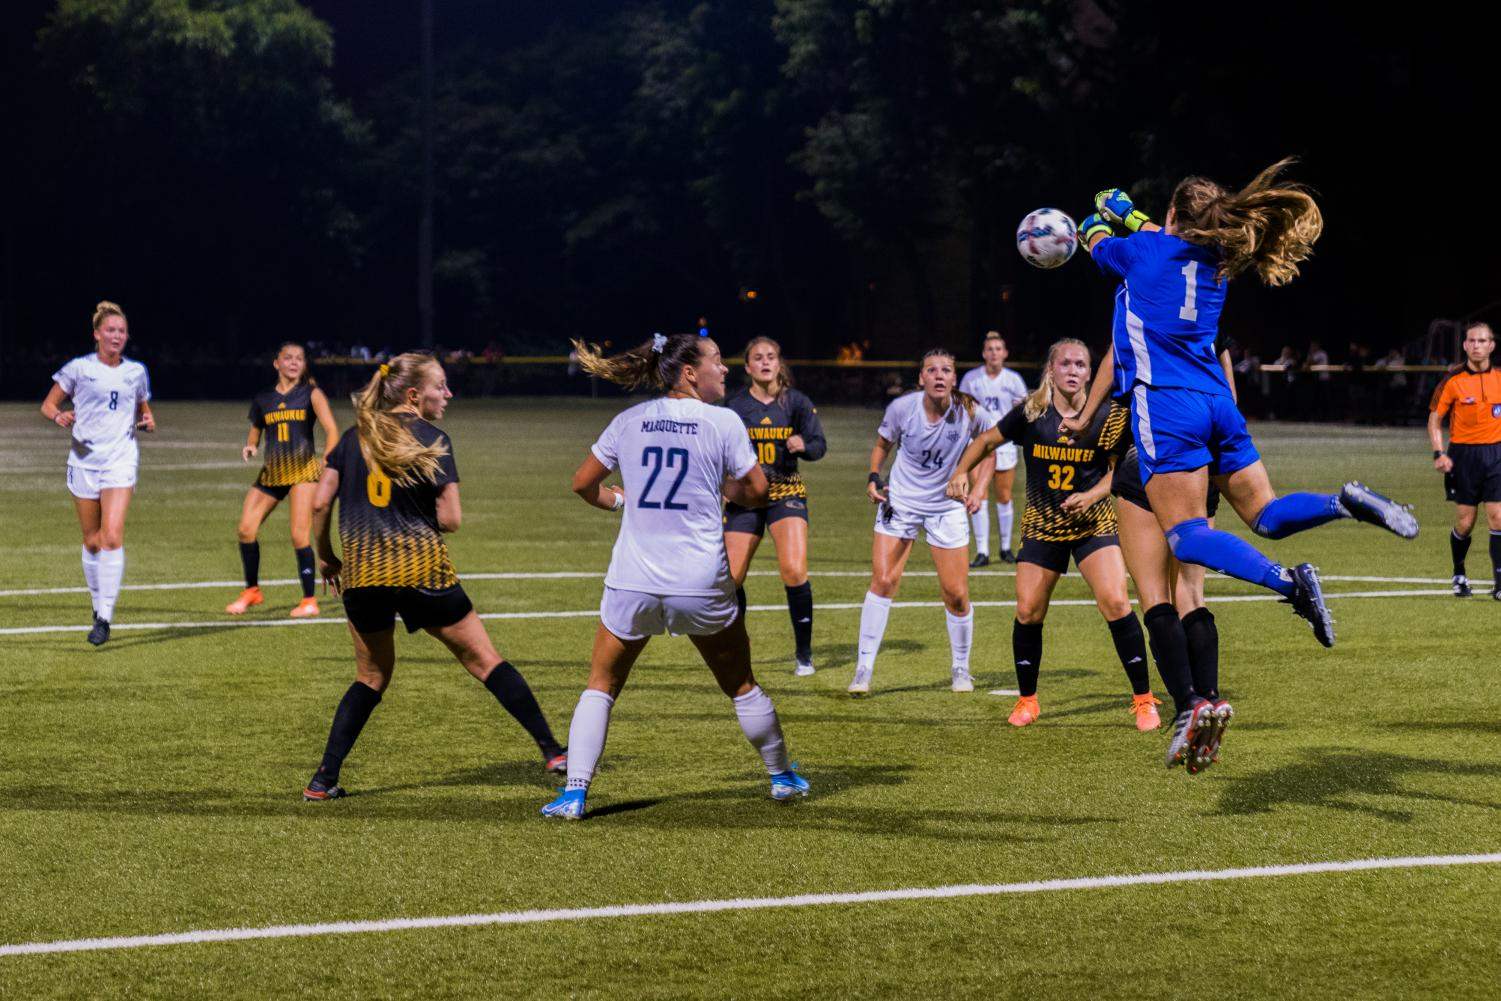 UWM goalkeeper Elaina LaMacchia reaches for the ball in MU's 1-0 loss to the Panthers Sept. 15 at Engelmann Stadium.